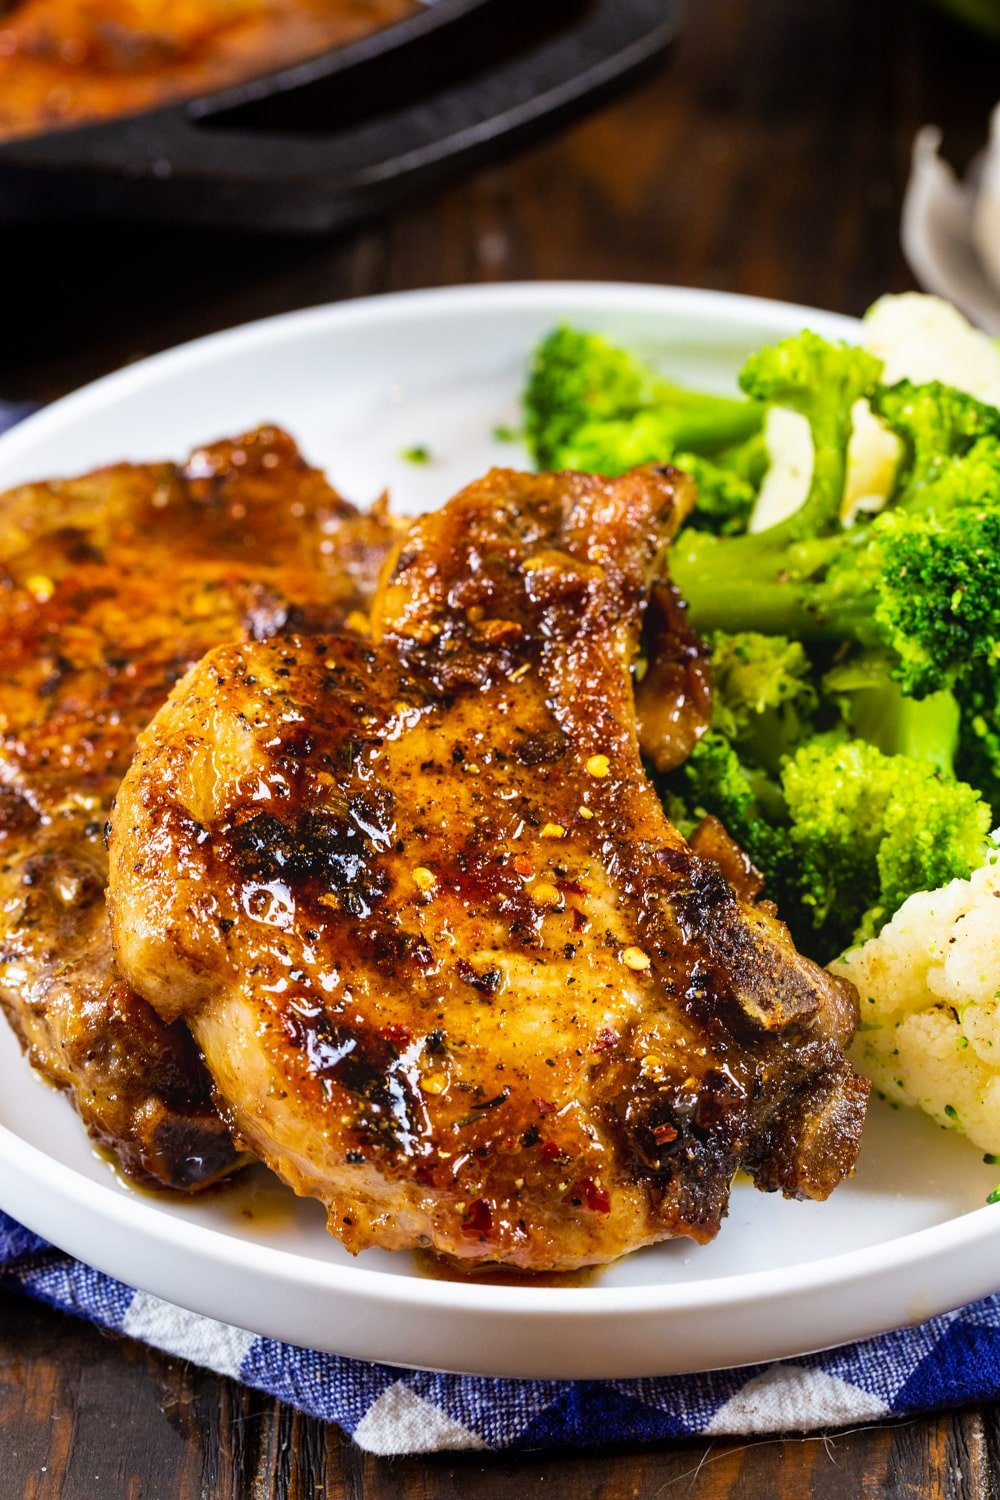 Brown Sugar Garlic Pork Chops on a plate with broccoli.